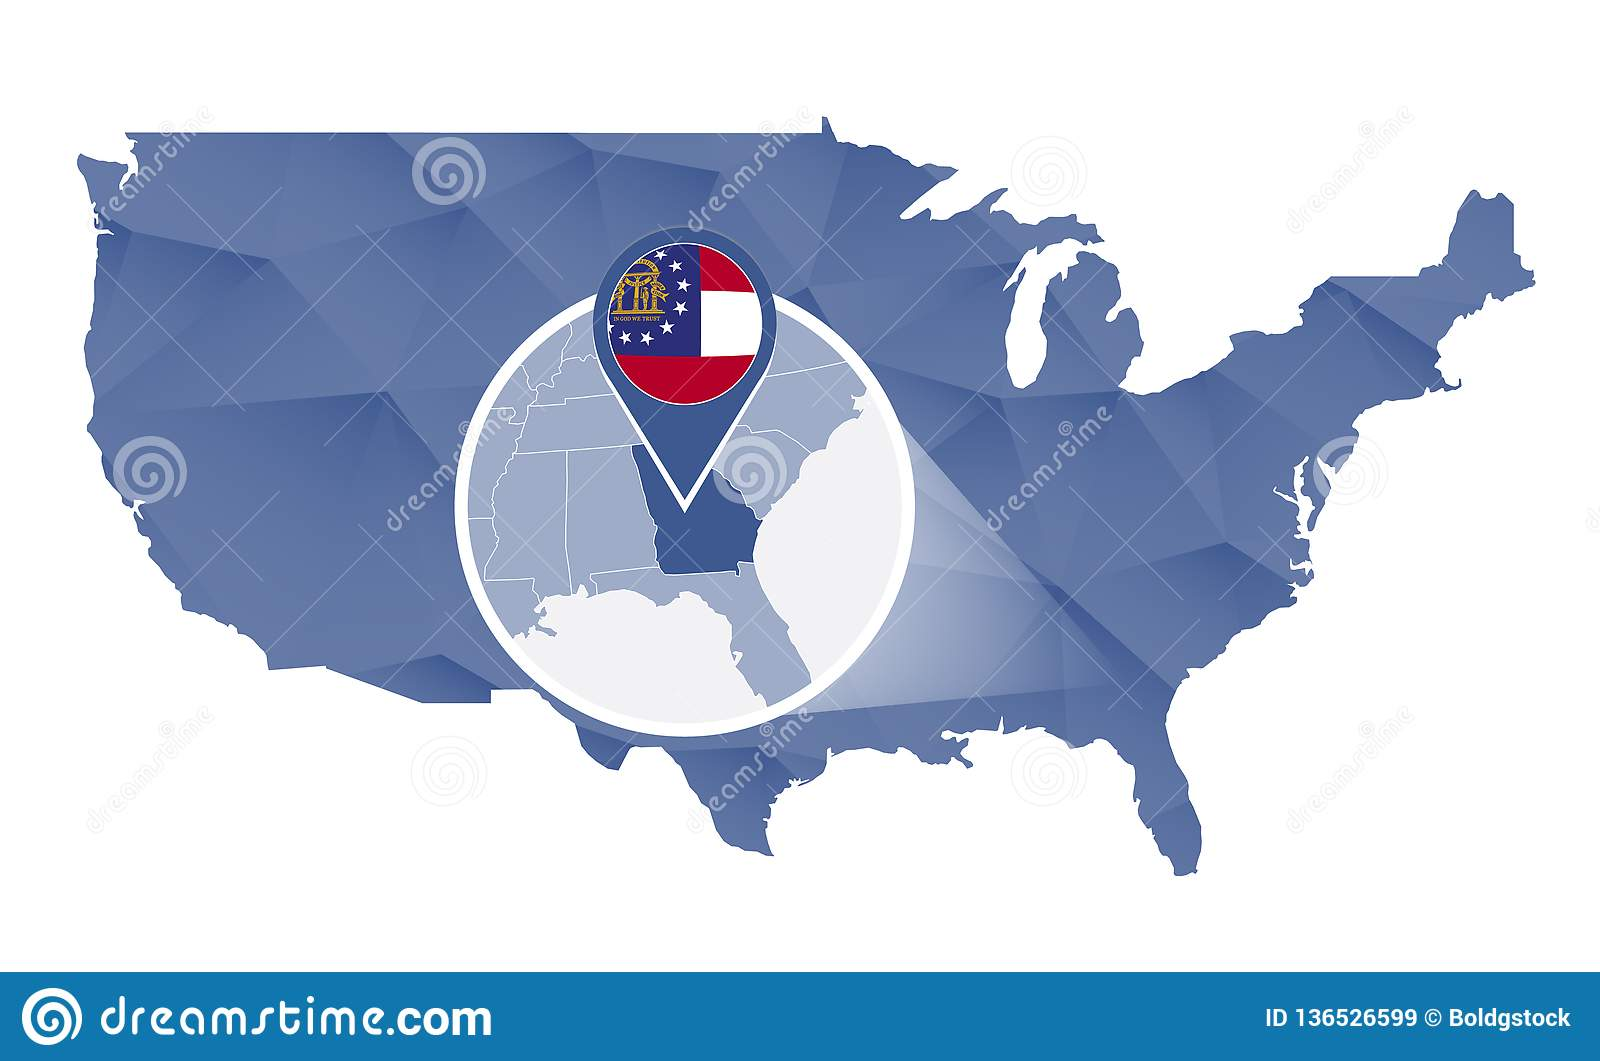 Georgia On Usa Map.Georgia State Magnified On United States Map Stock Vector